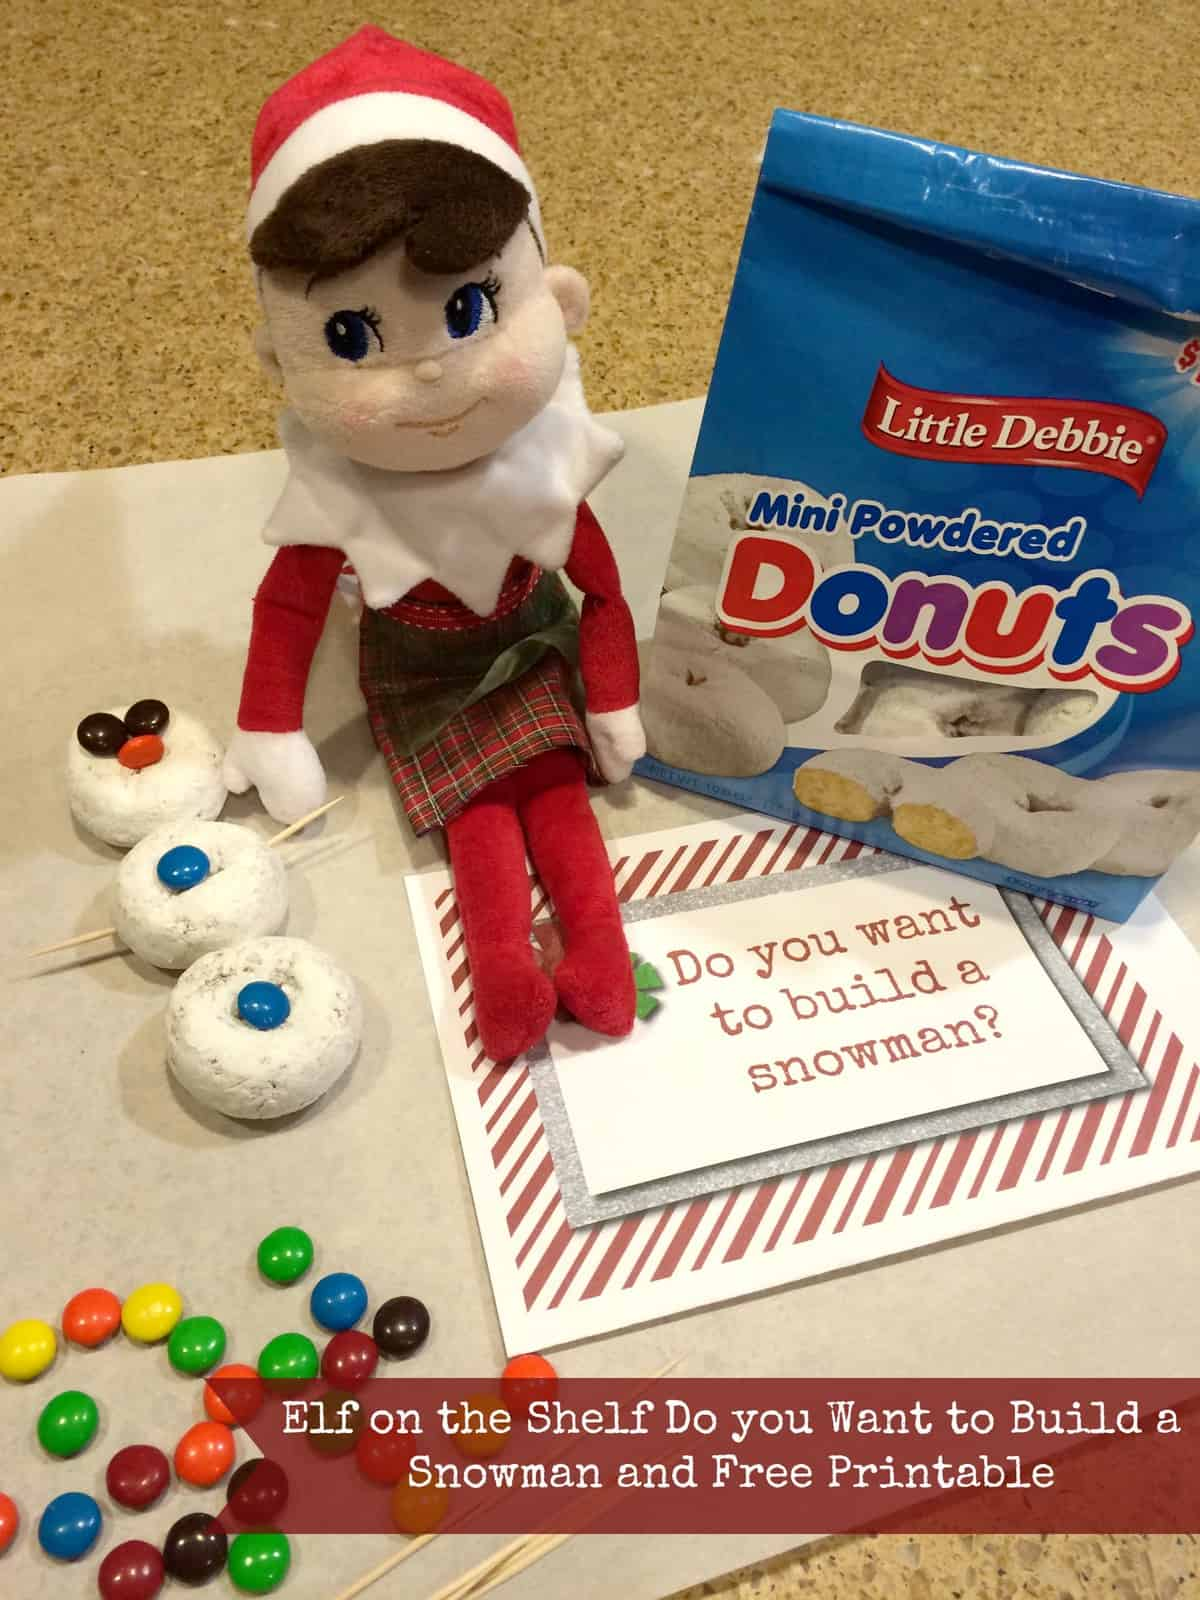 picture relating to Do You Want to Build a Snowman Printable named Elf upon the Shelf Snowman Concept and Cost-free Printable